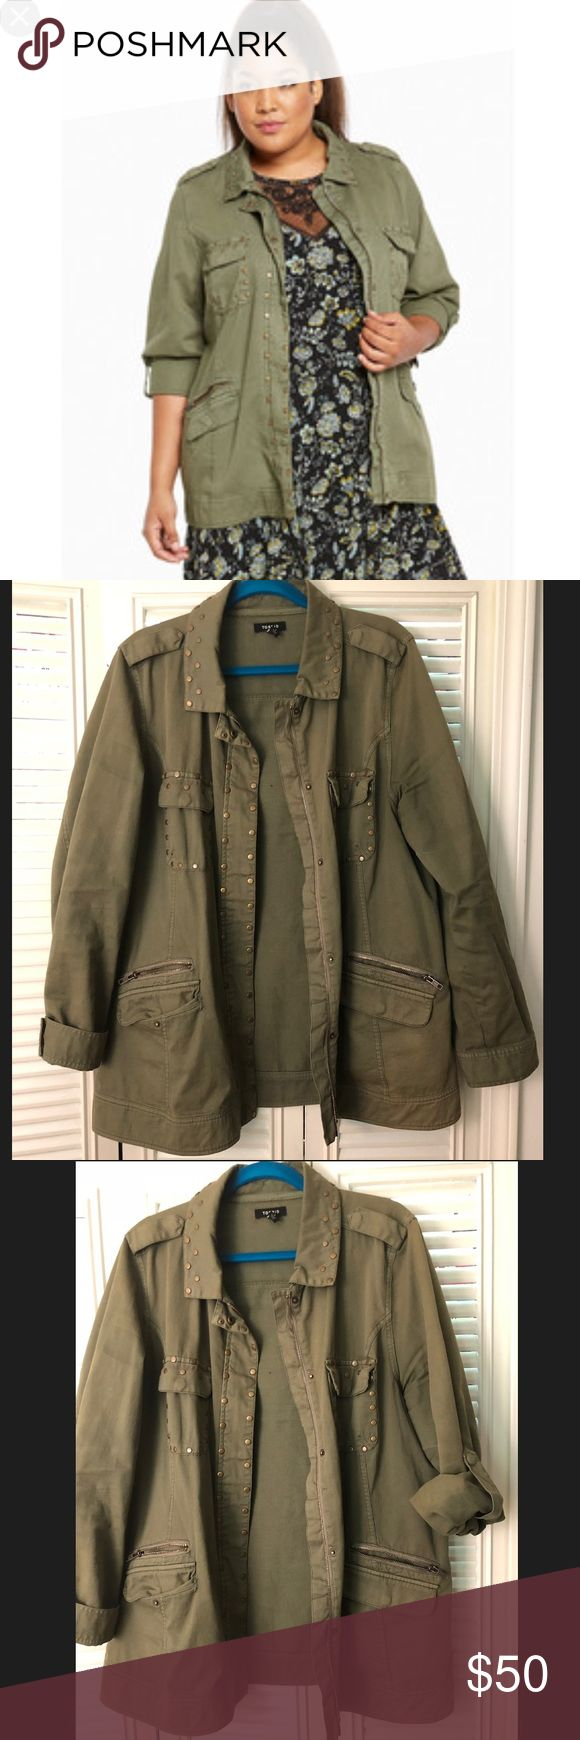 Studded military jacket. Cute army green military jacket! Torrid size 1. torrid Jackets & Coats